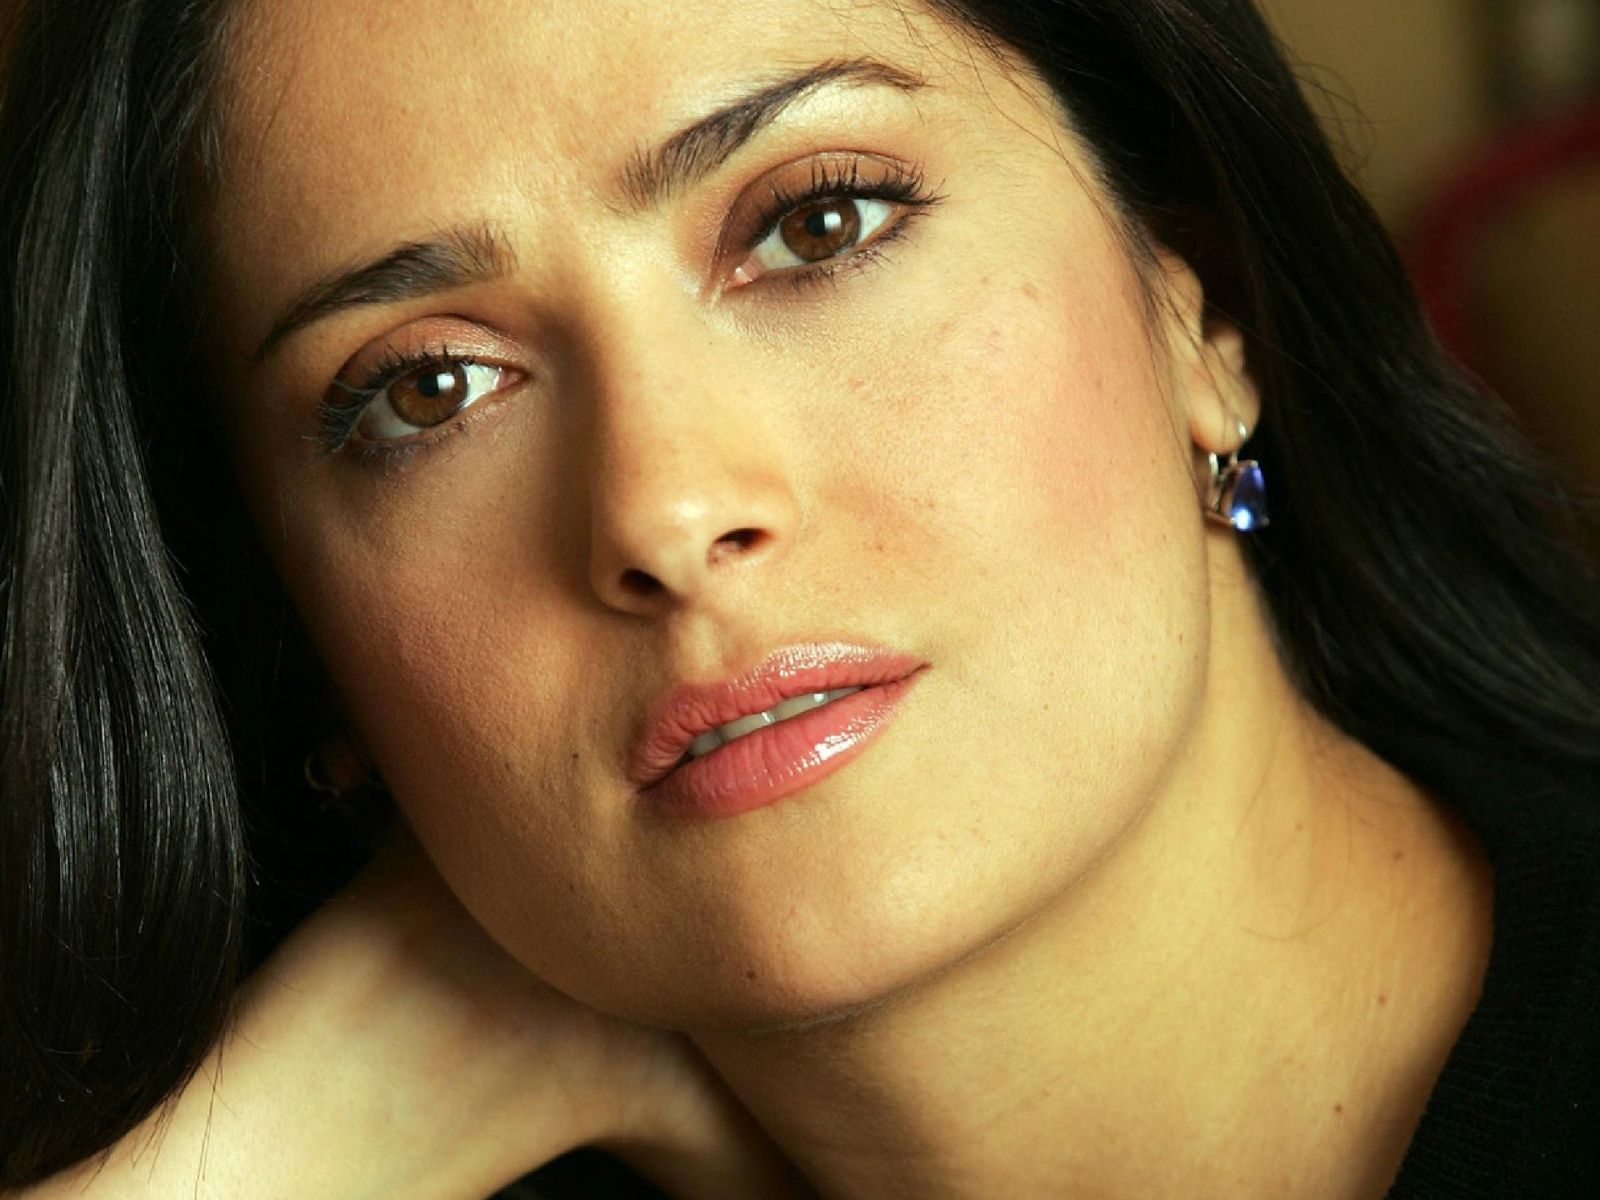 Salma Hayek Wallpapers Images Photos Pictures Backgrounds 1600x1200